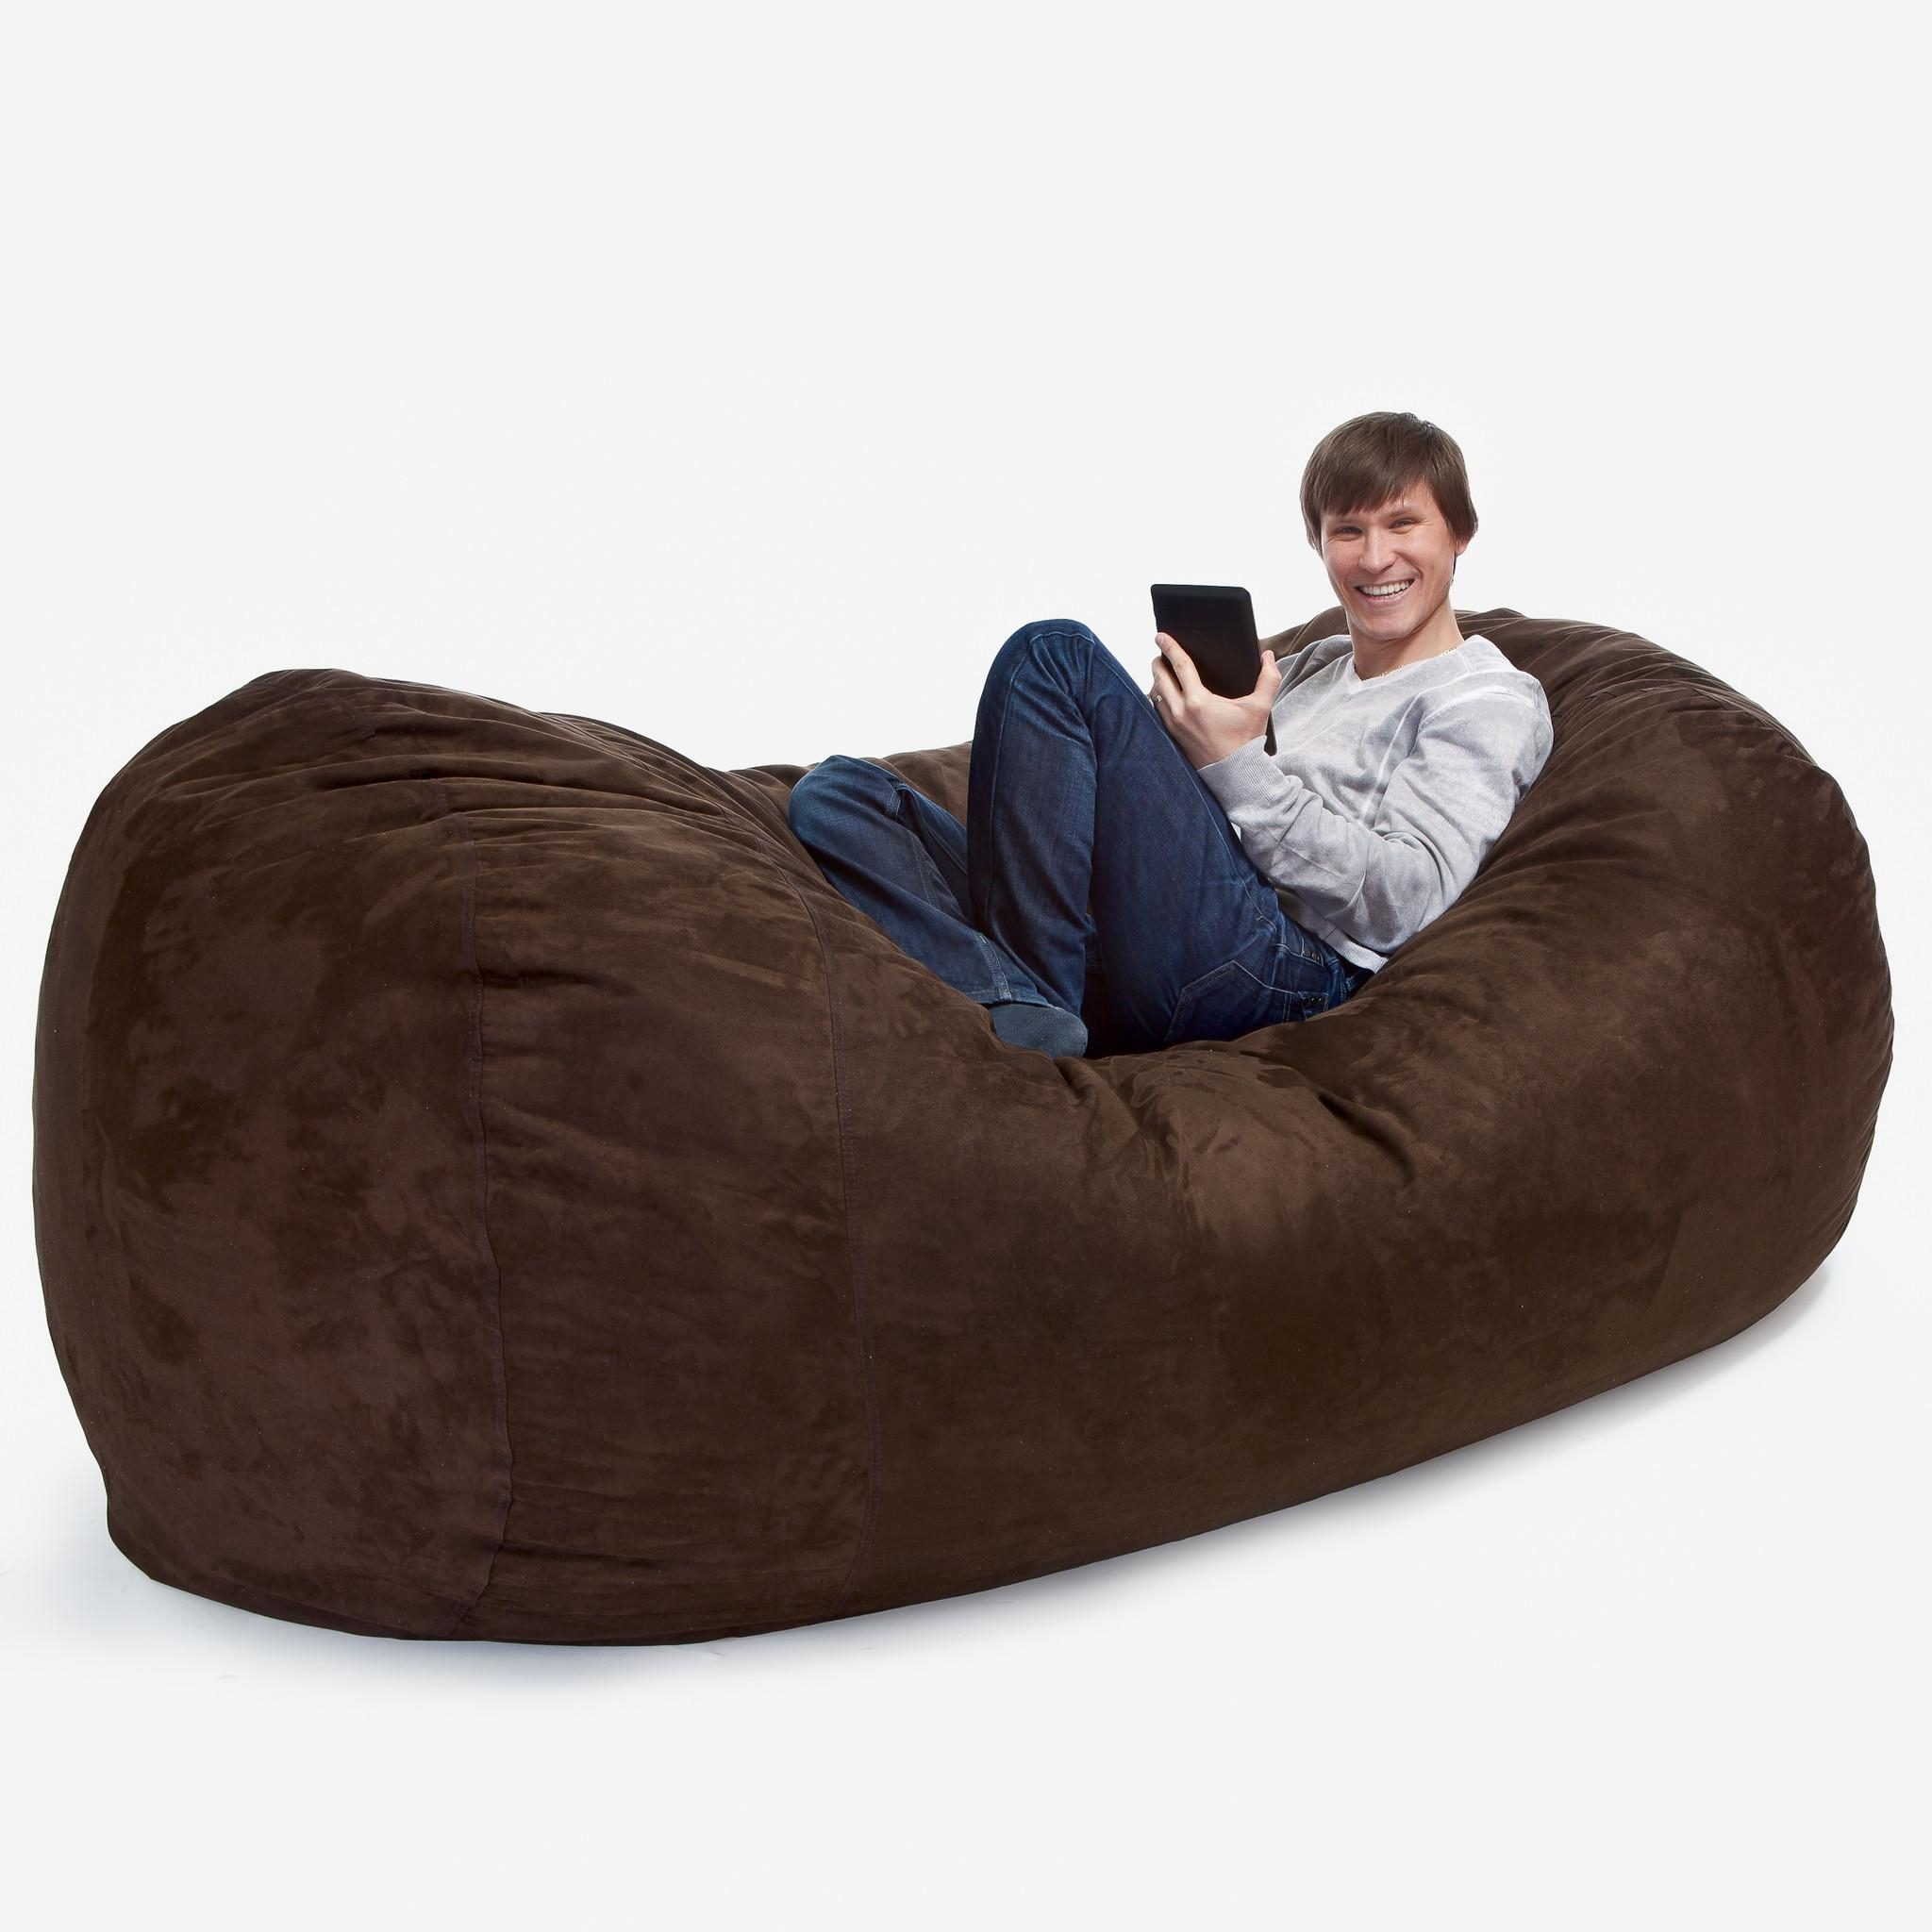 7 Classy, Adult Bean Bags Room & Bath Regarding Bean Bag Sofa Chairs (View 15 of 20)